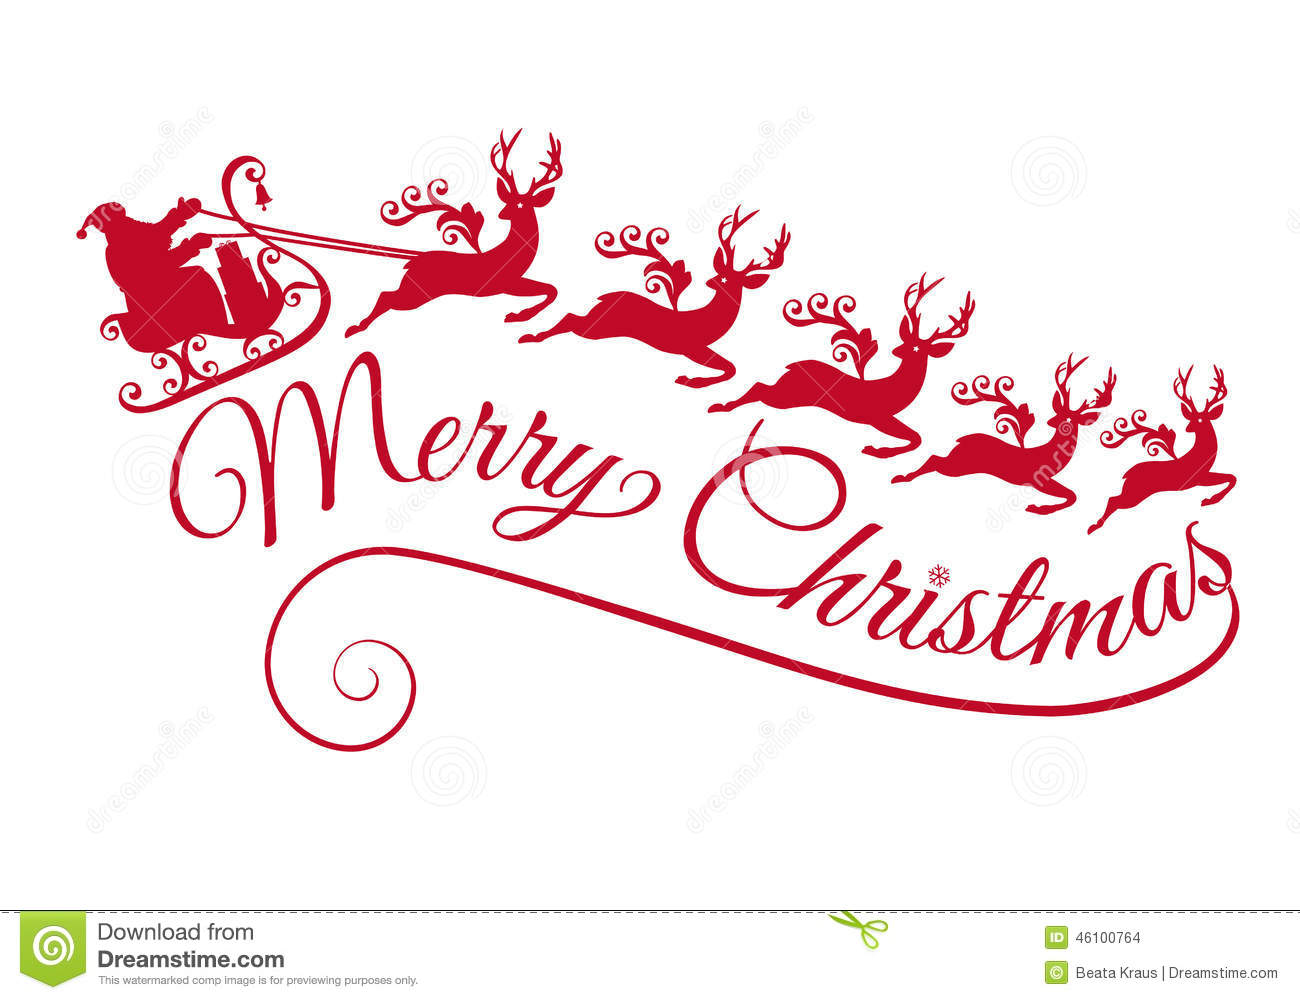 Santa With His Sleigh And Reindeers, Vector Stock Vector - Image ...